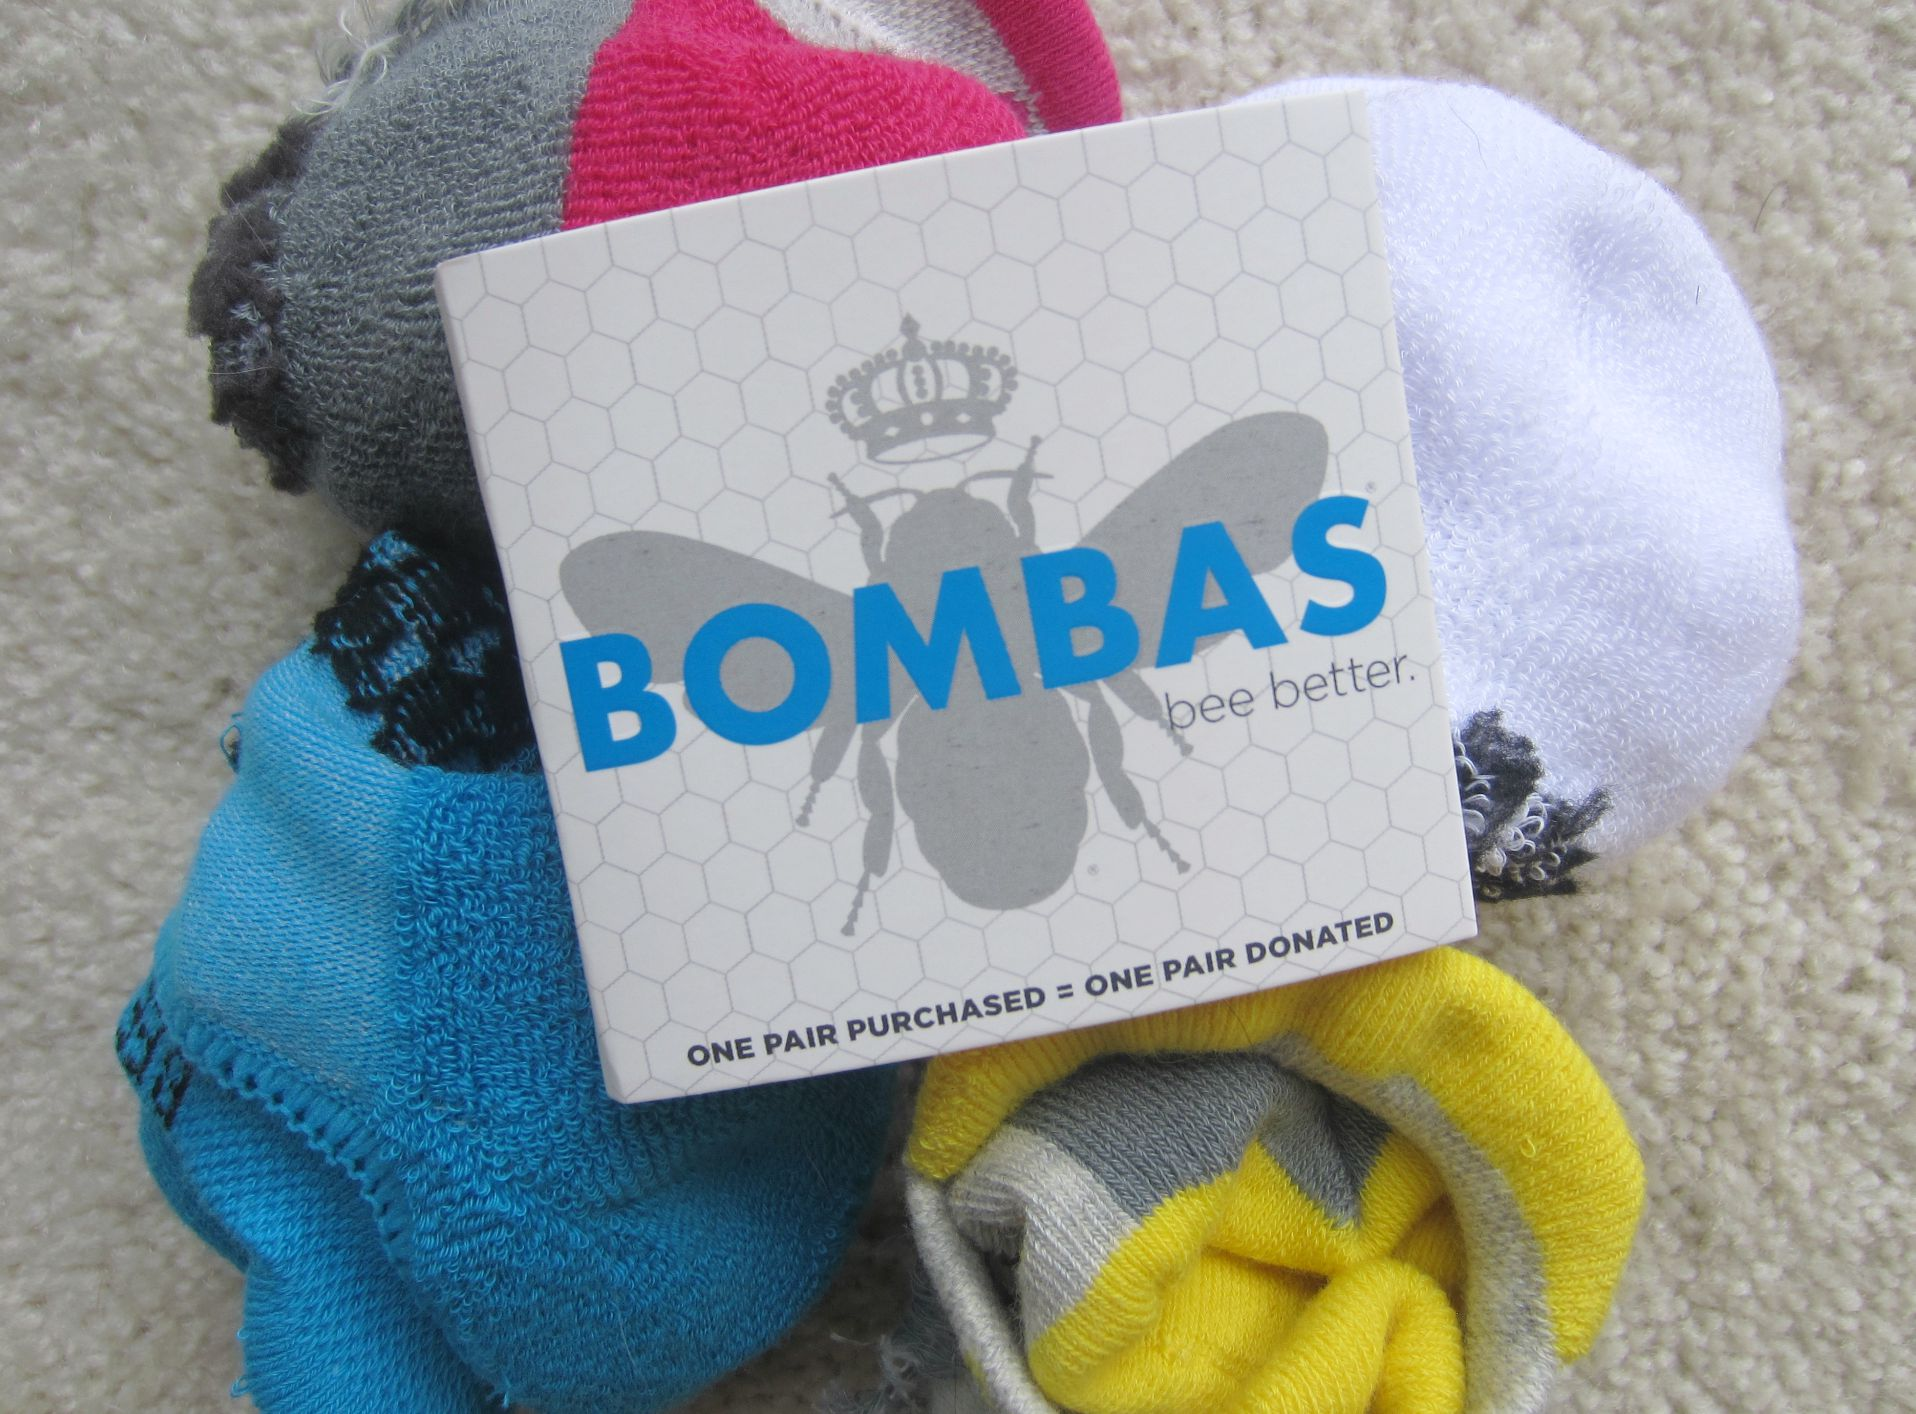 bombas bee better socks